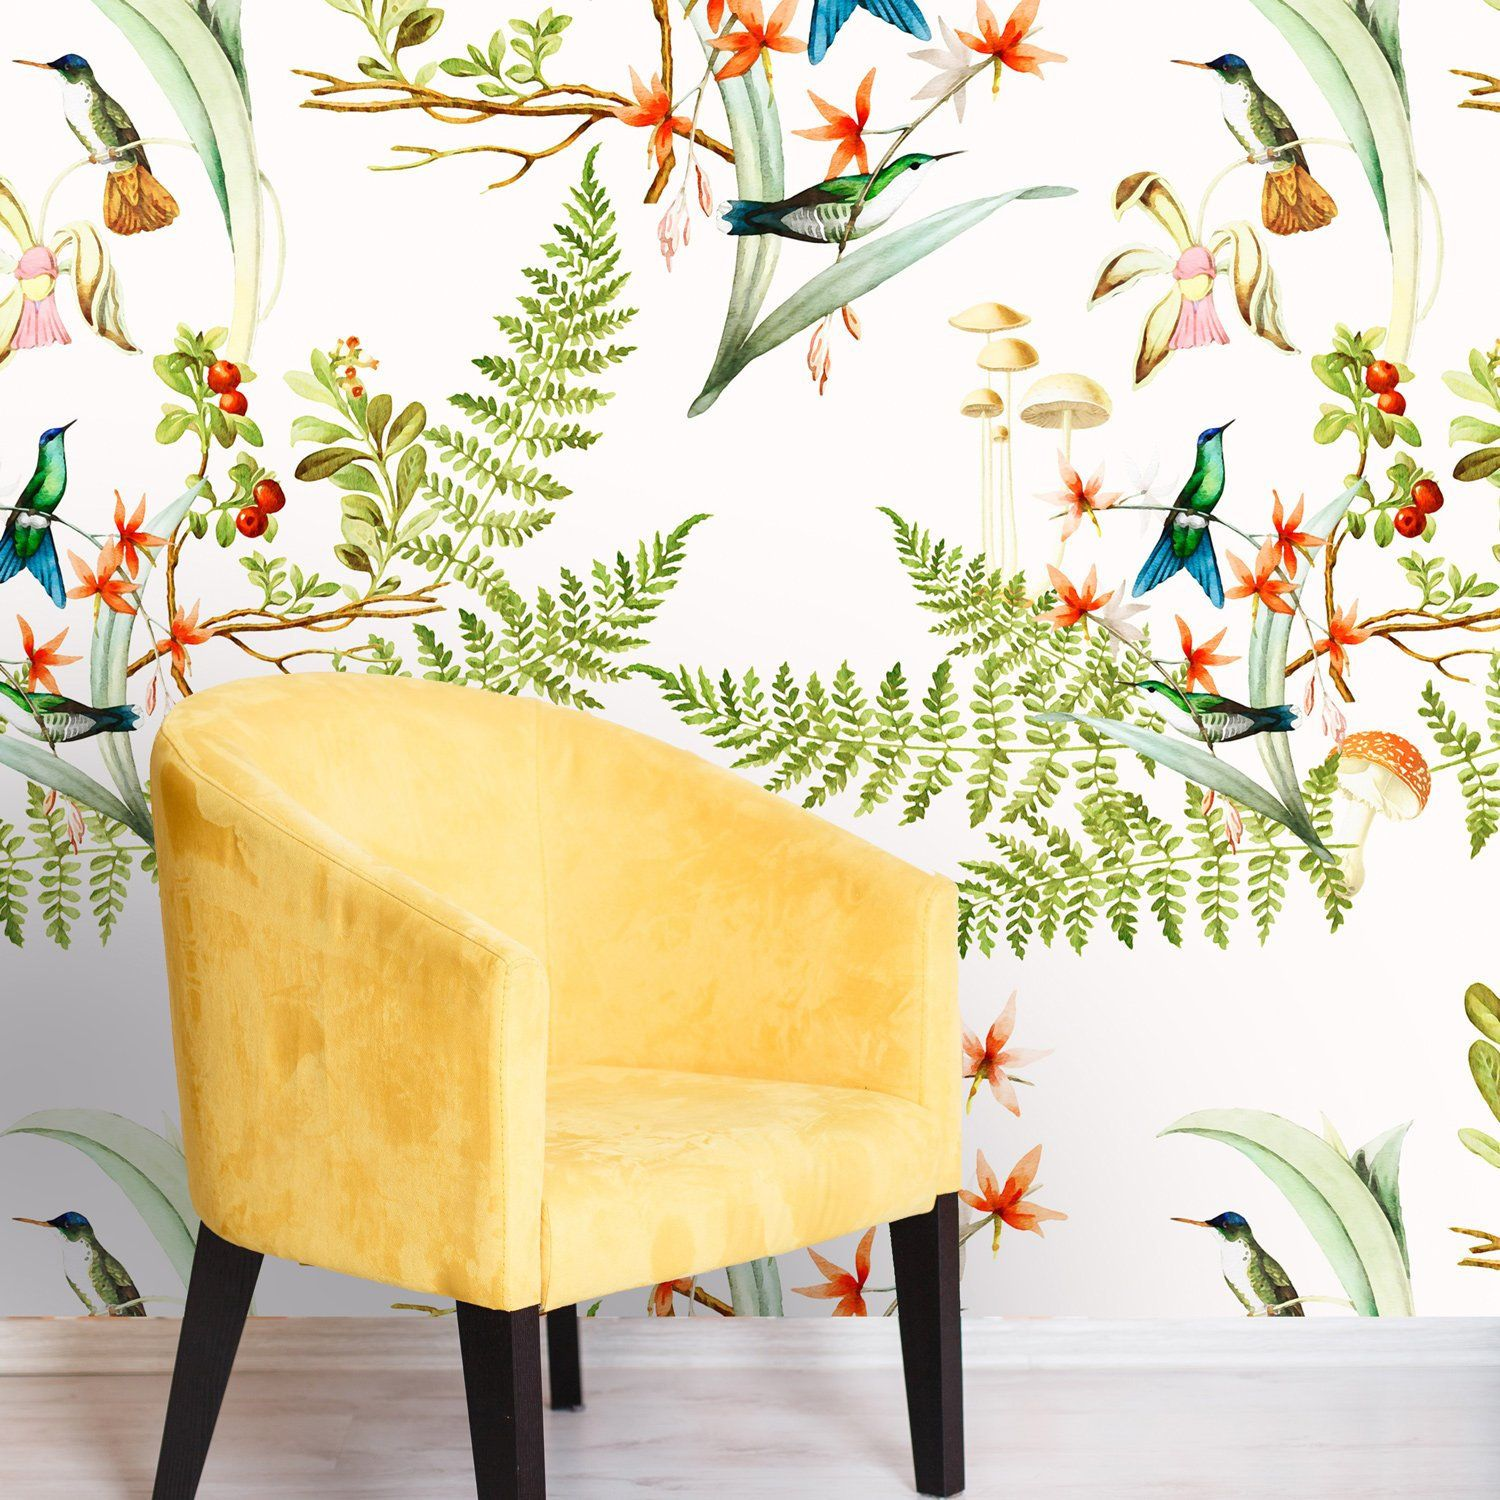 Woodland Hummingbird Removable Wallpaper, Peel and Stick